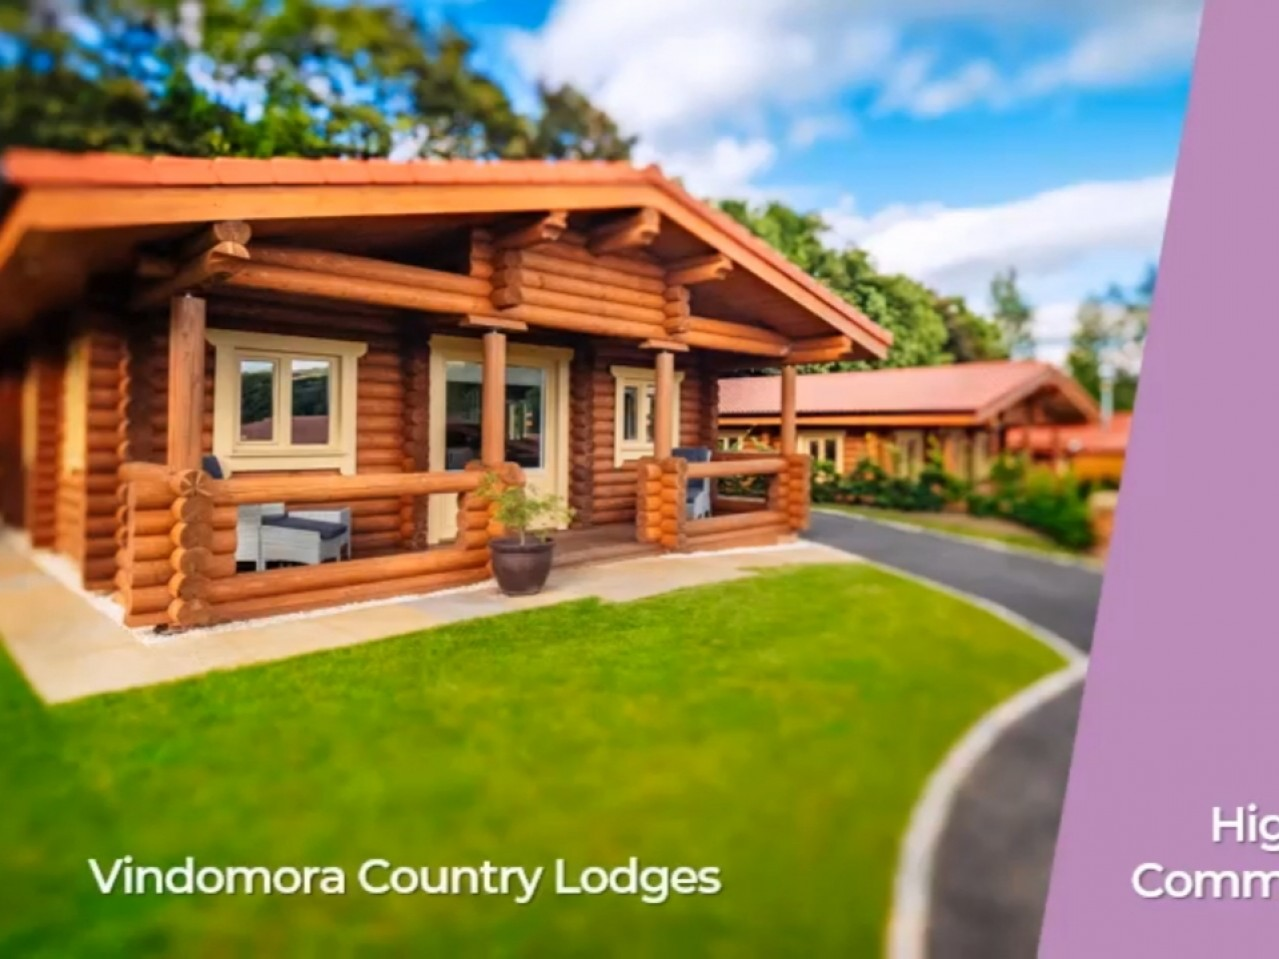 St Ebba Lodge At Vindomora Country Lodges